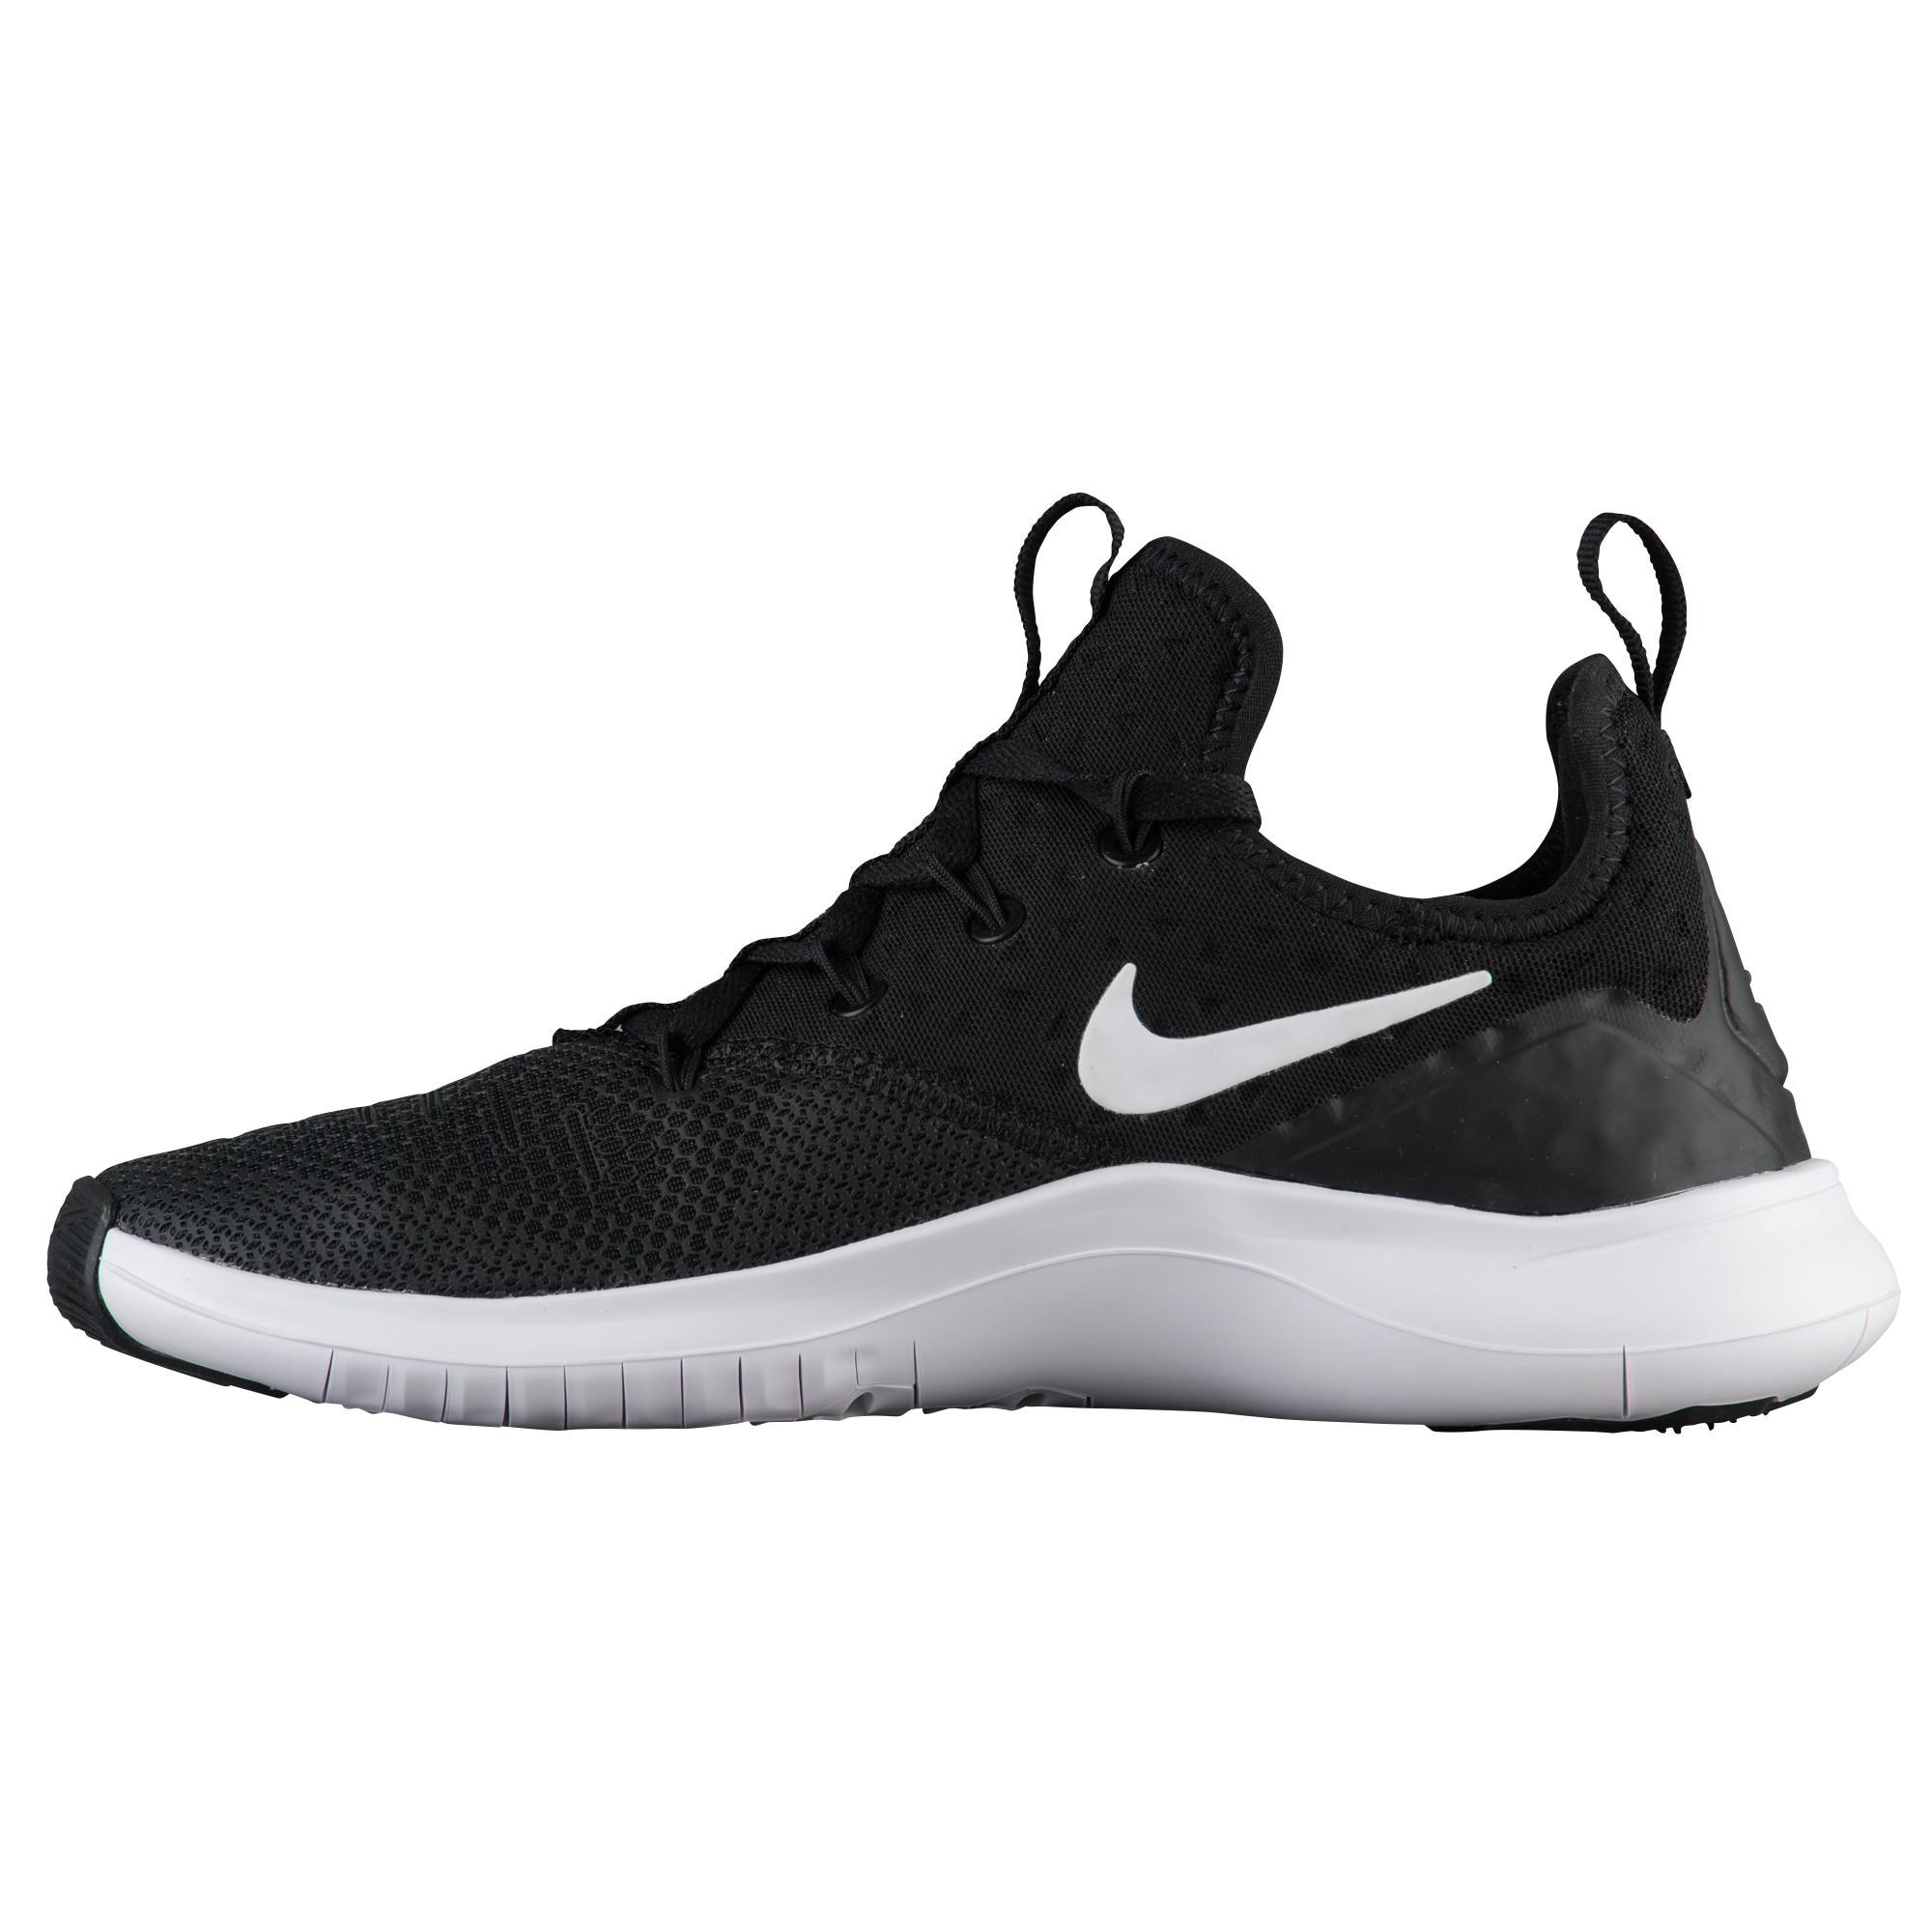 Nike Free Tr 8 Training Shoes in Black